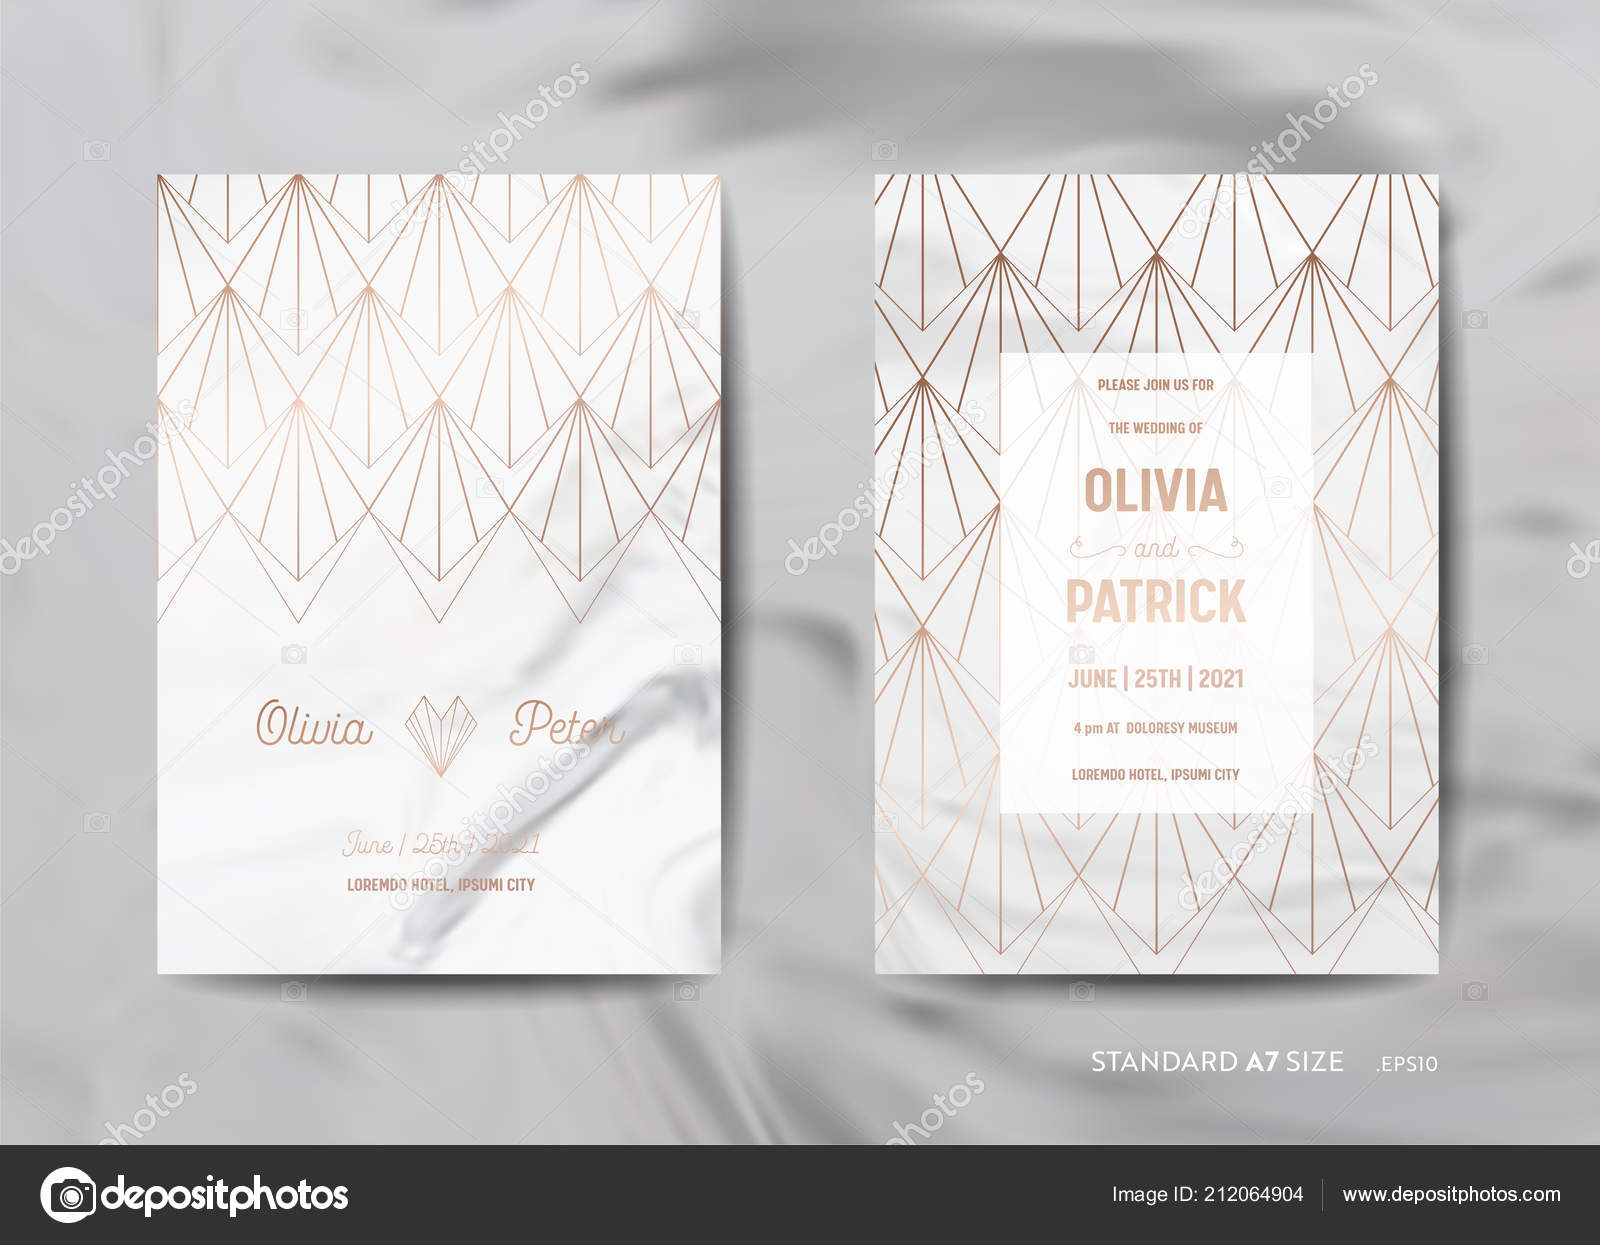 Wedding Invitation Cards Collection. Save the Date, RSVP with trendy ...